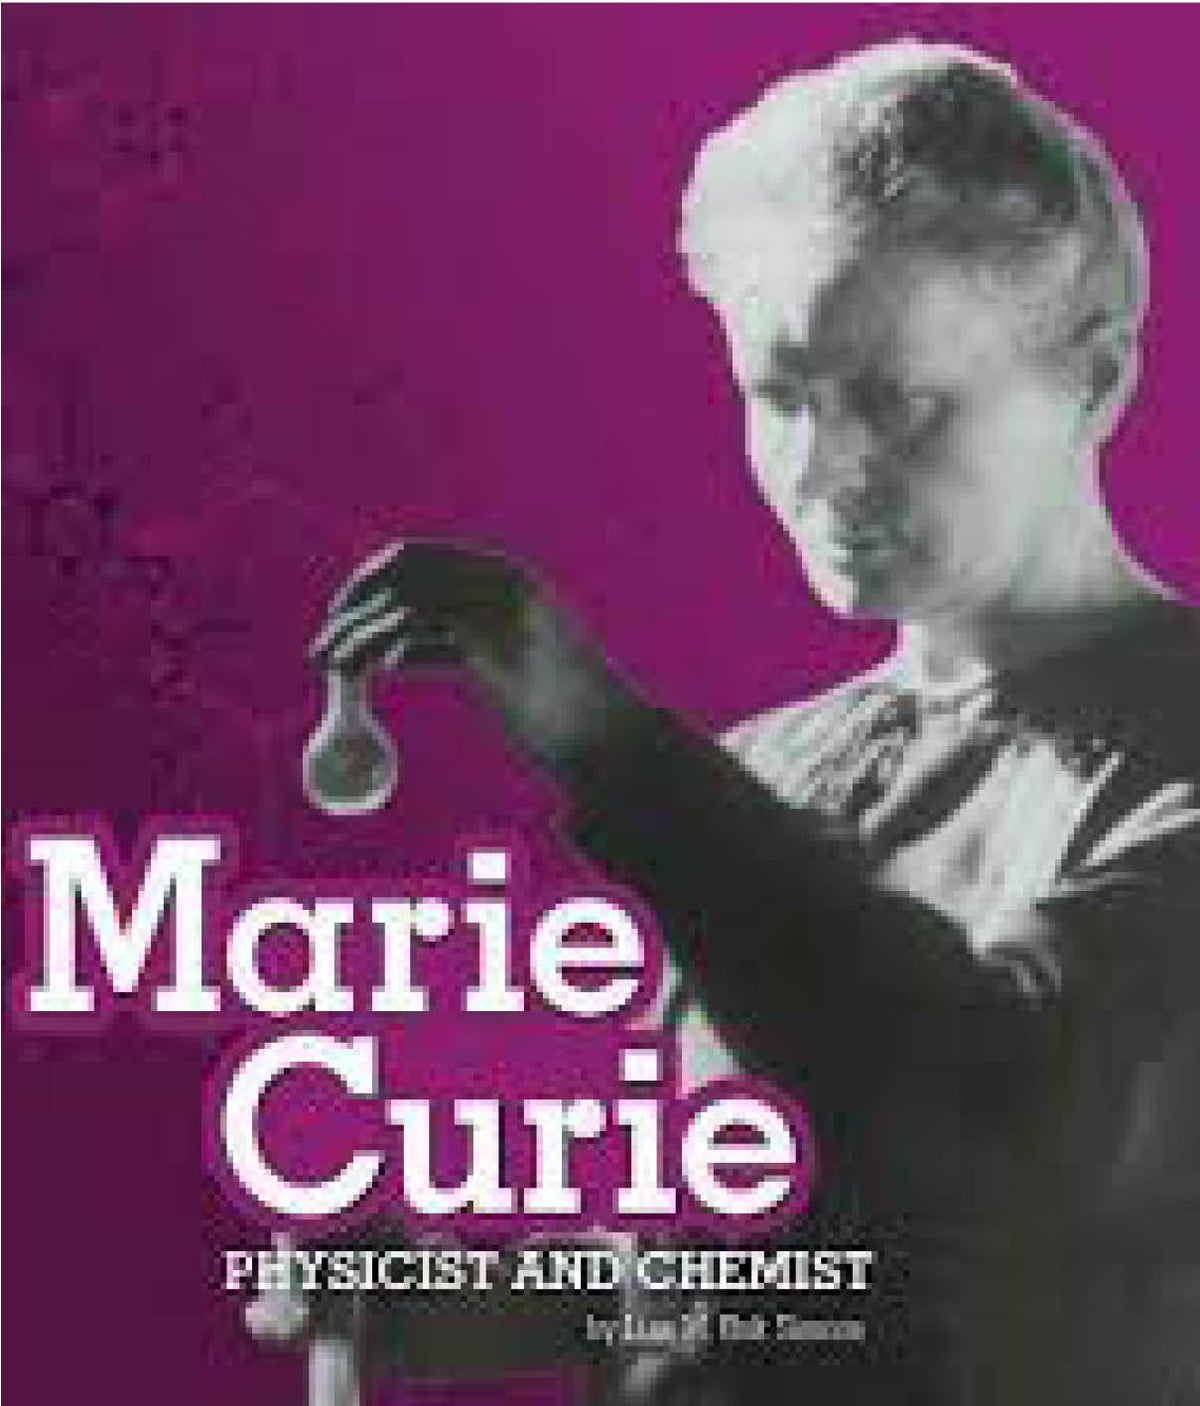 Marie Curie: Physicist and Chemist by Lisa M.Bolt Simons